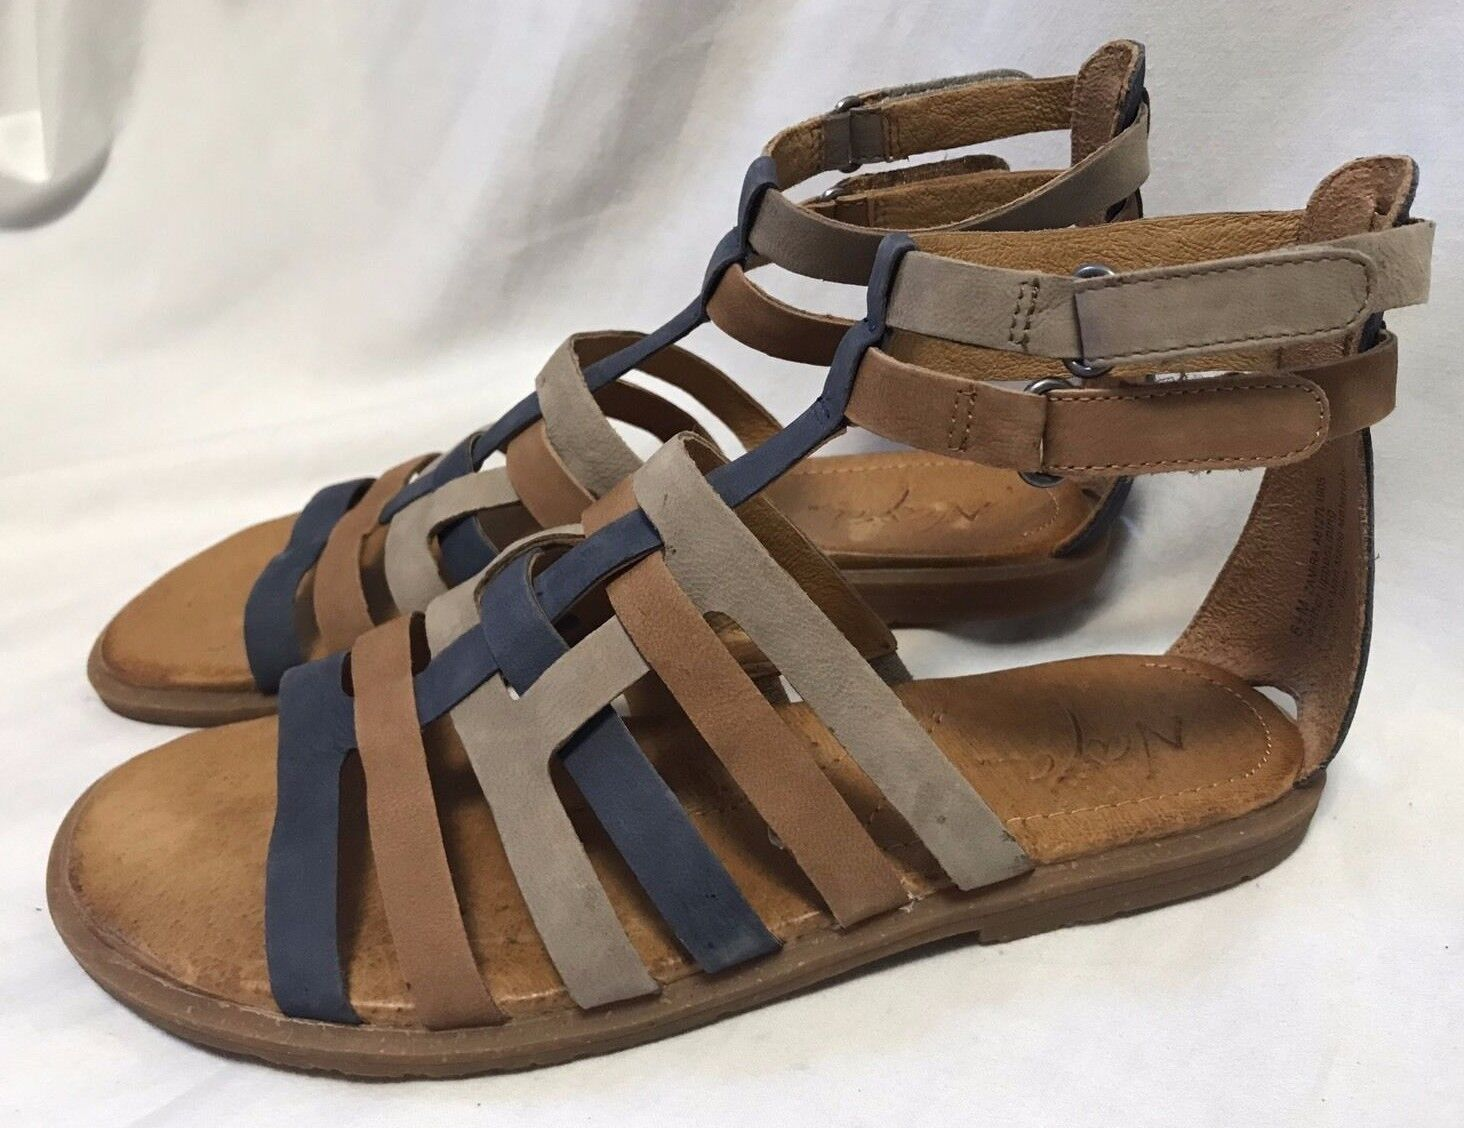 Naya Zamira Gladiator Sandals Women's 6.5M Strappy Suede Leather Flats shoes